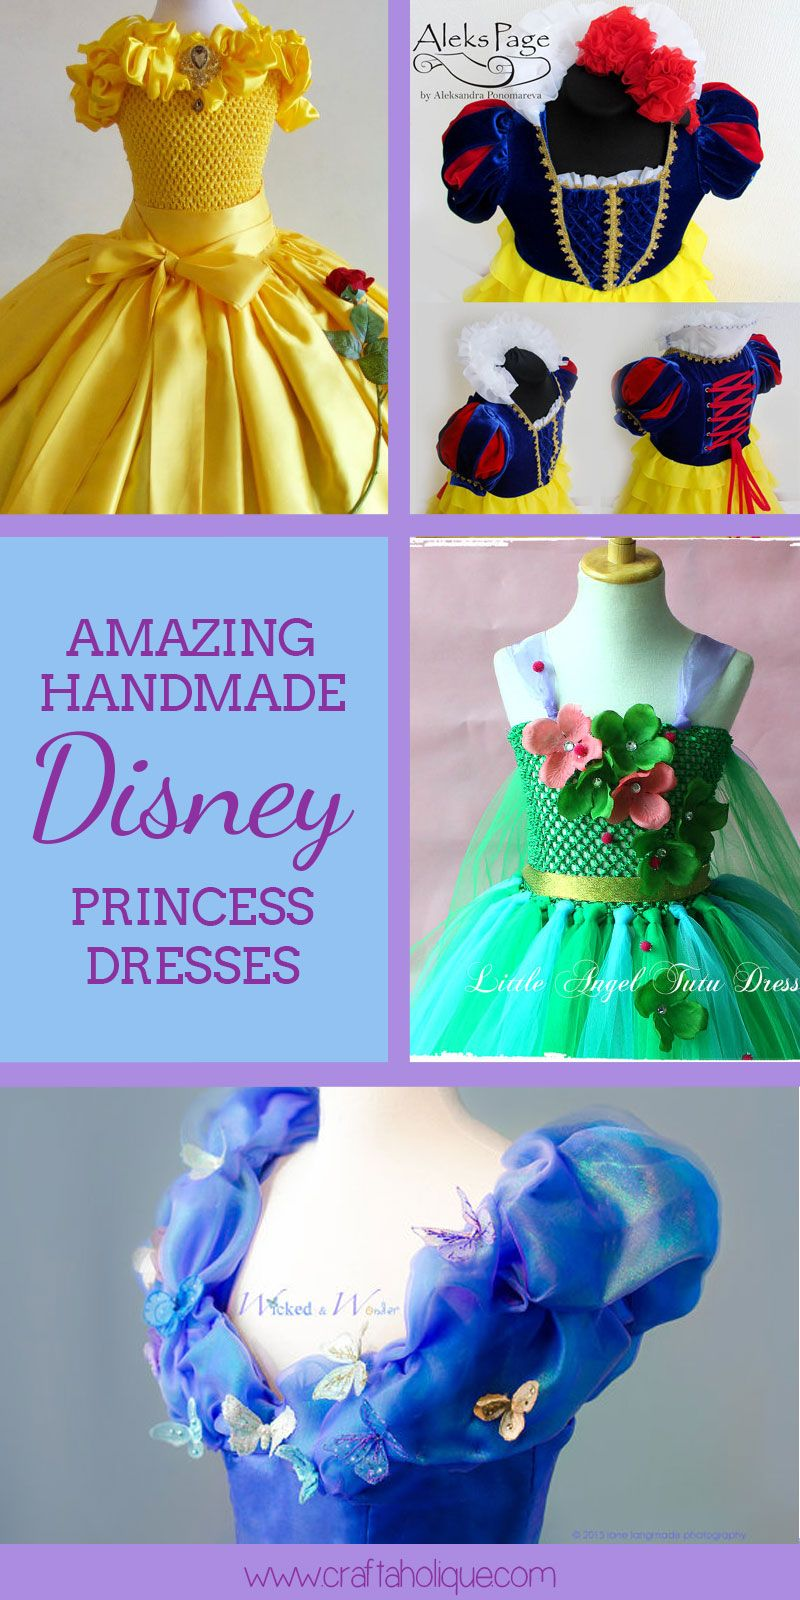 051dff6603359 Looking for a Disney Princess Dress with a difference? Check out these  incredible handmade Disney Princess Dresses from talented designers on Etsy.